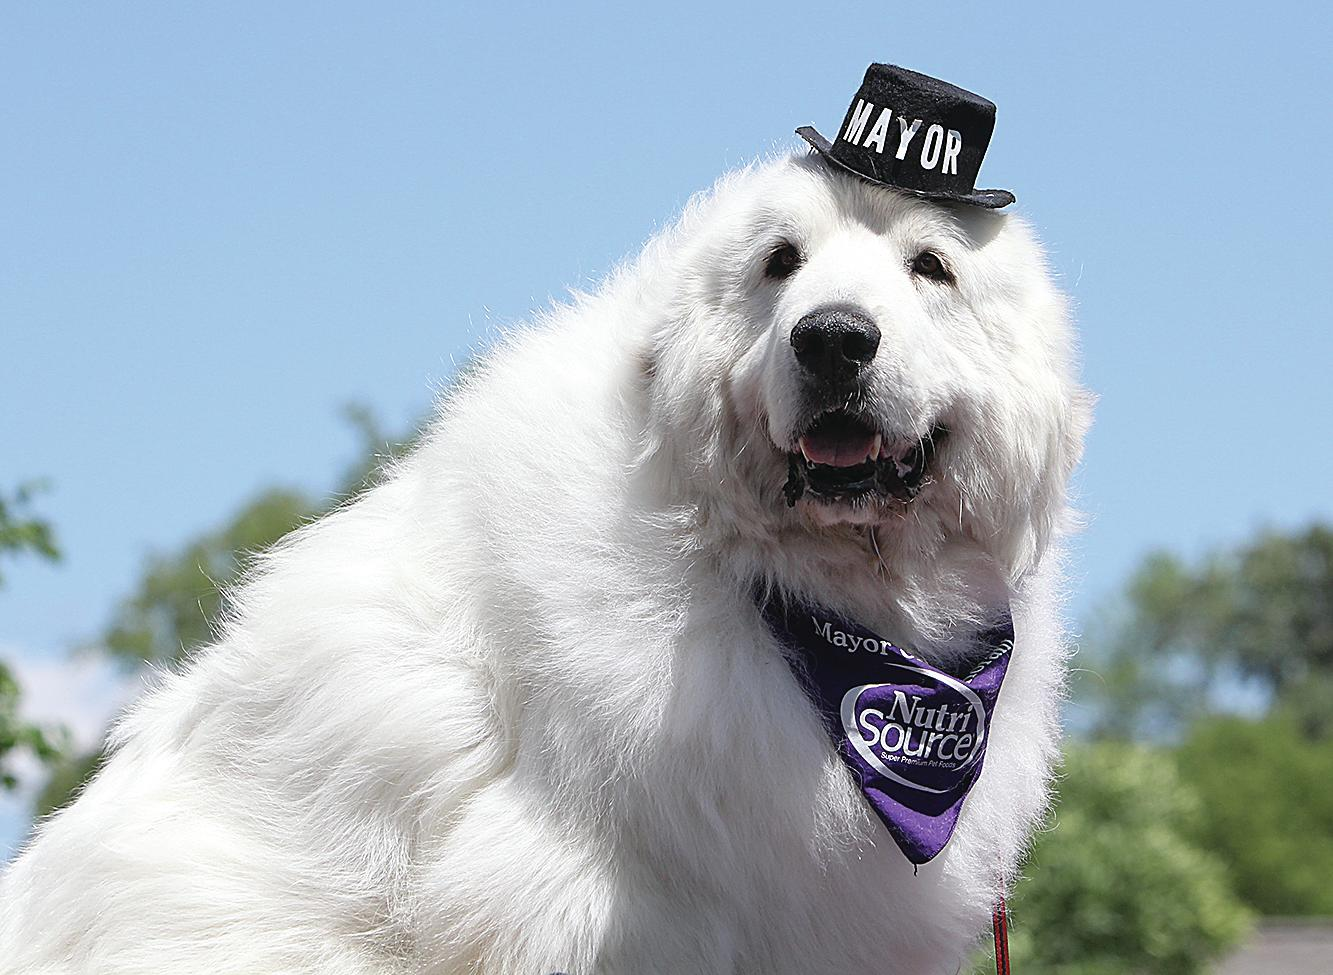 Duke was elected mayor of Cormorant in a landslide, write-in election and served four terms in office. (Brian Basham / File photo)